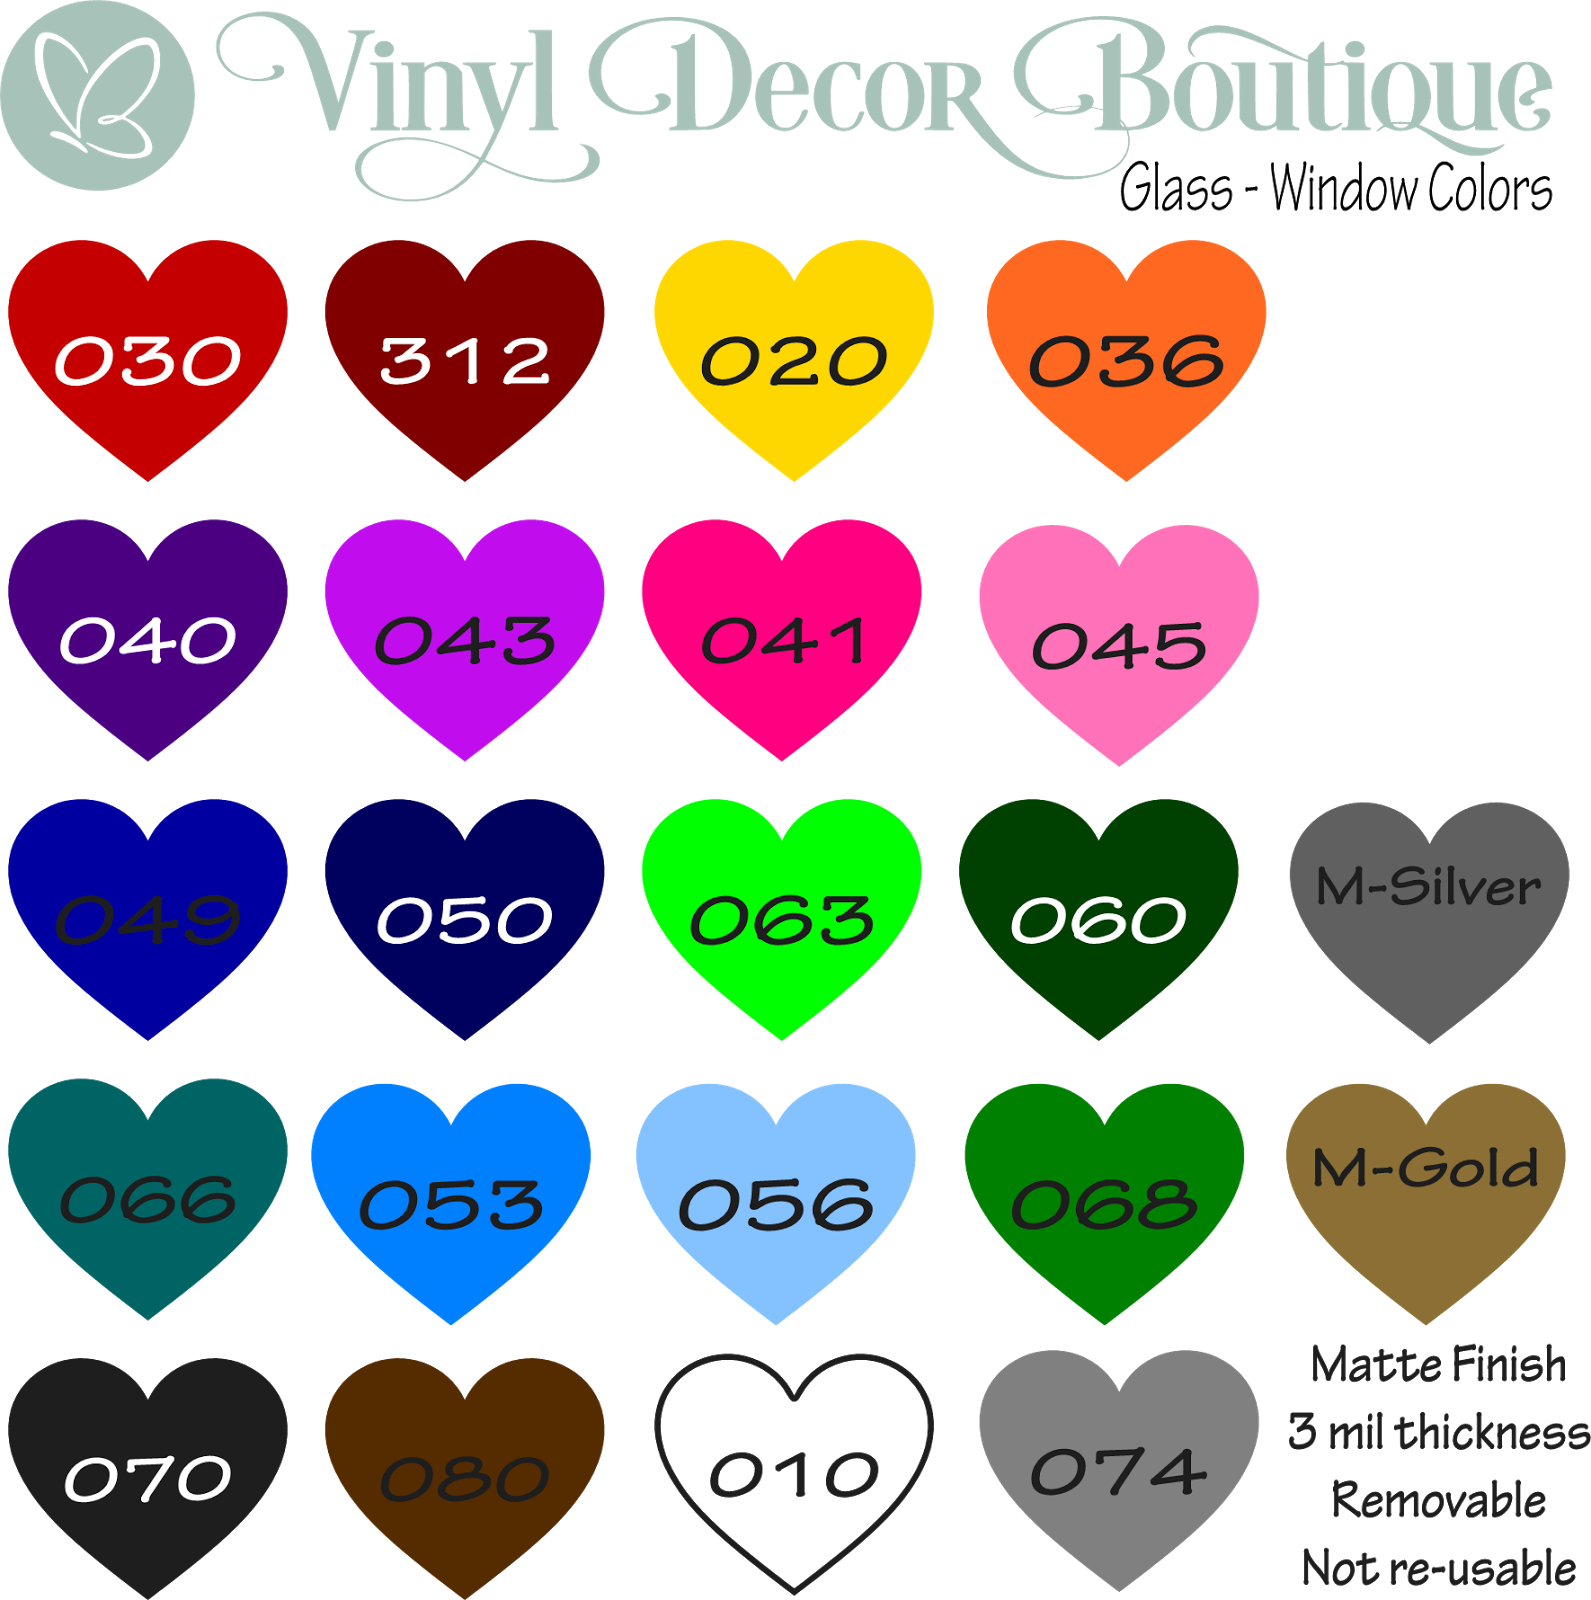 Vinyl Decor Boutique Simple Things You Should Know And Do Before - Custom vinyl decal application instructions pdfvinyl decor boutique simple things you should know and do before